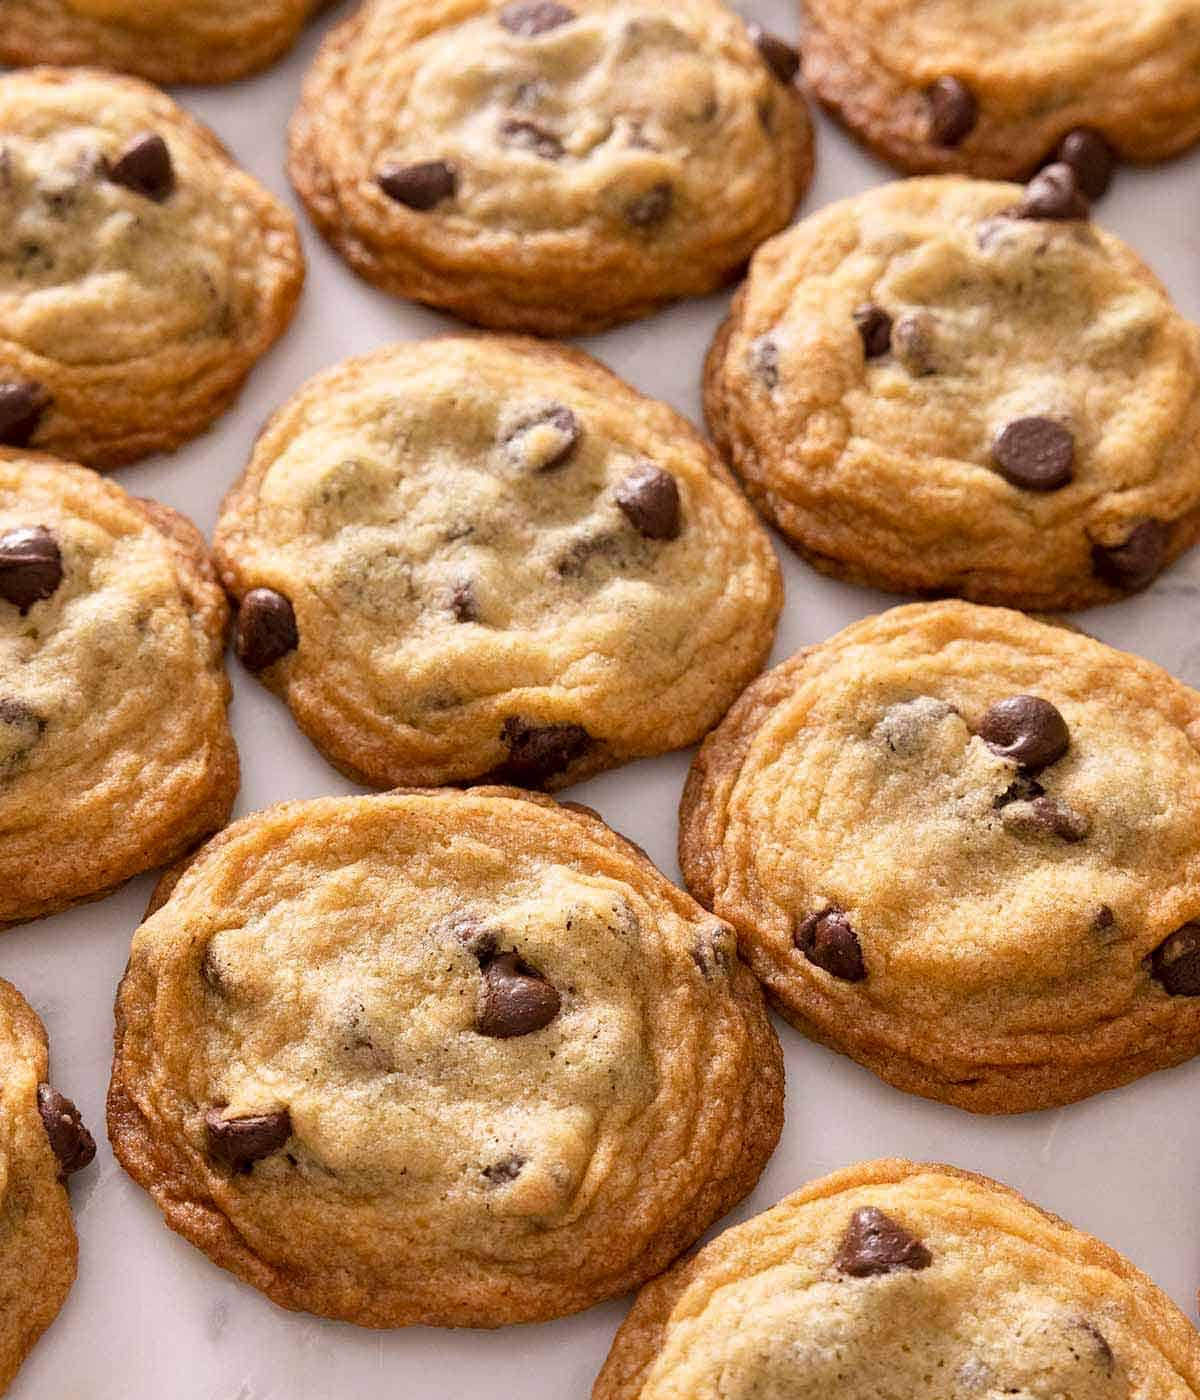 Multiple chocolate chip cookies side by side.